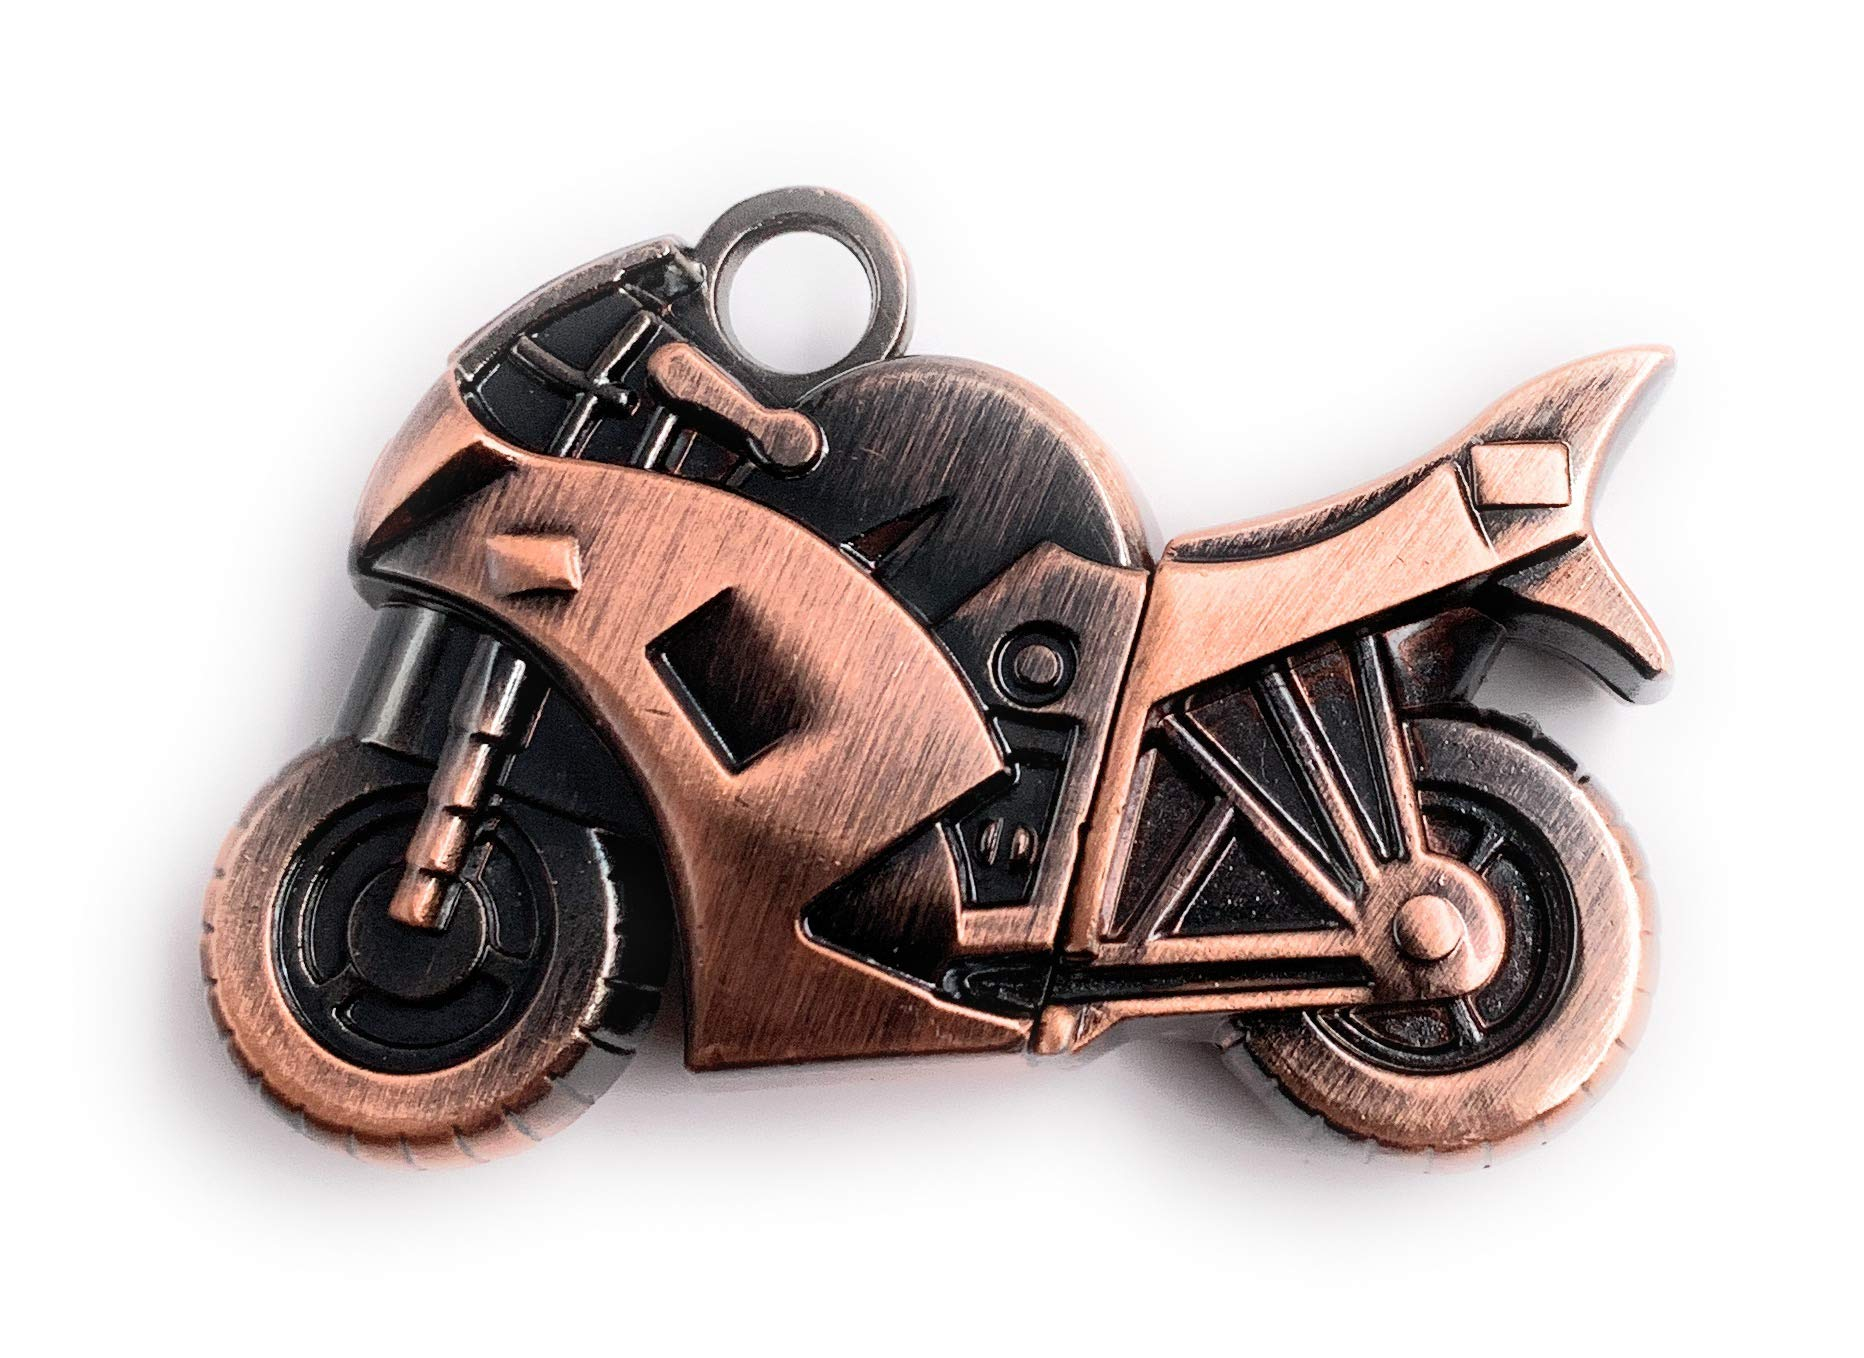 H-Customs Motocicleta Bicicleta Chopper Bronce Metal USB Stick ...